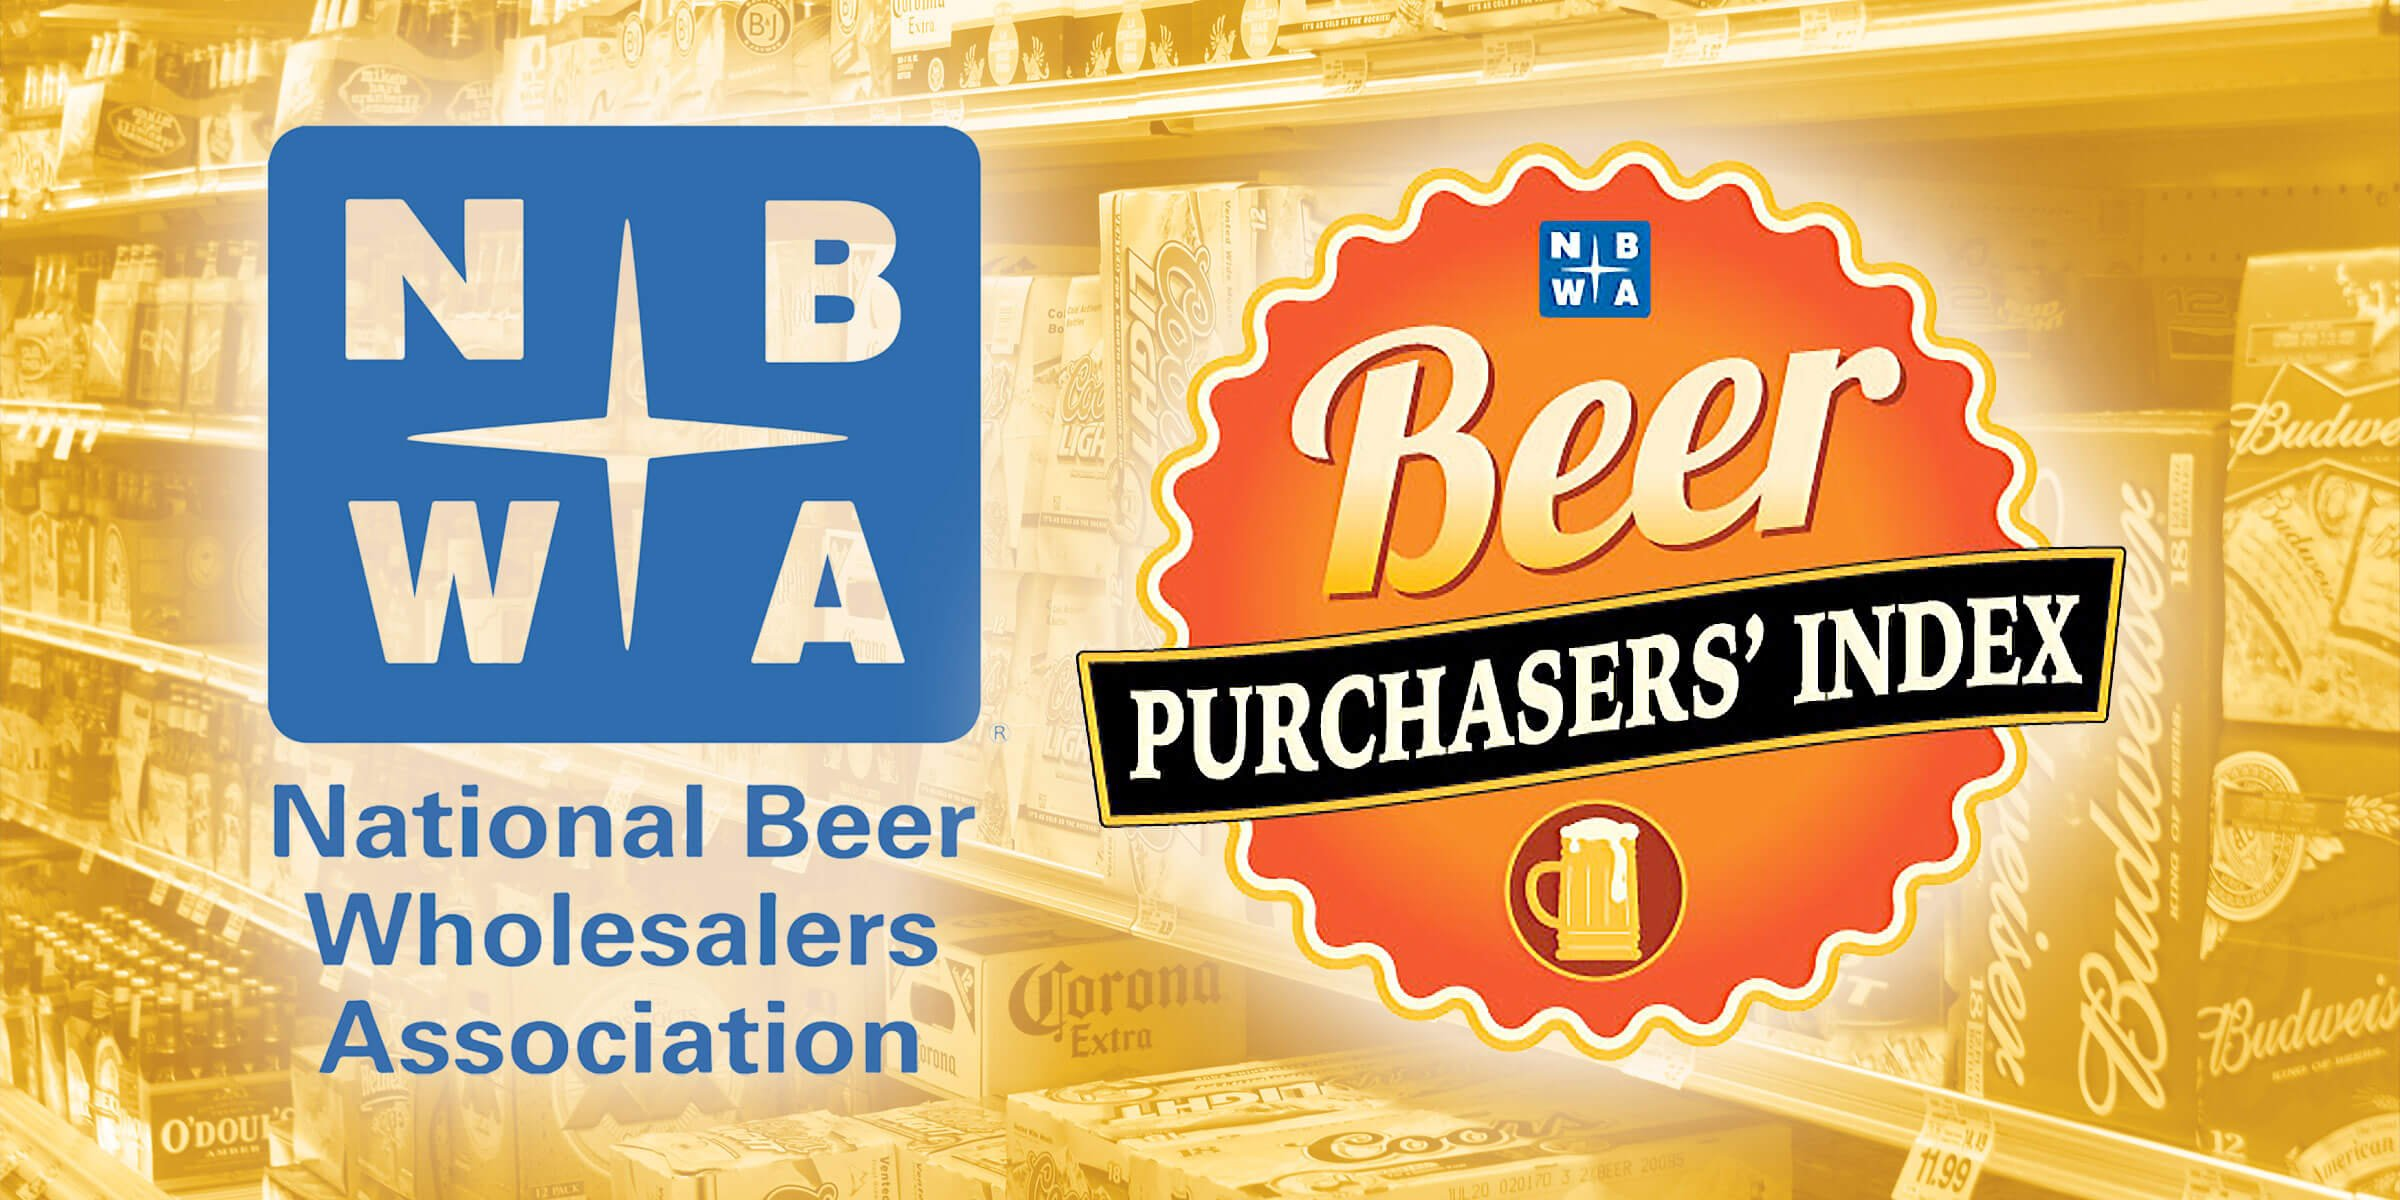 National Beer Wholesalers Association (NBWA) Beer Purchasers' Index